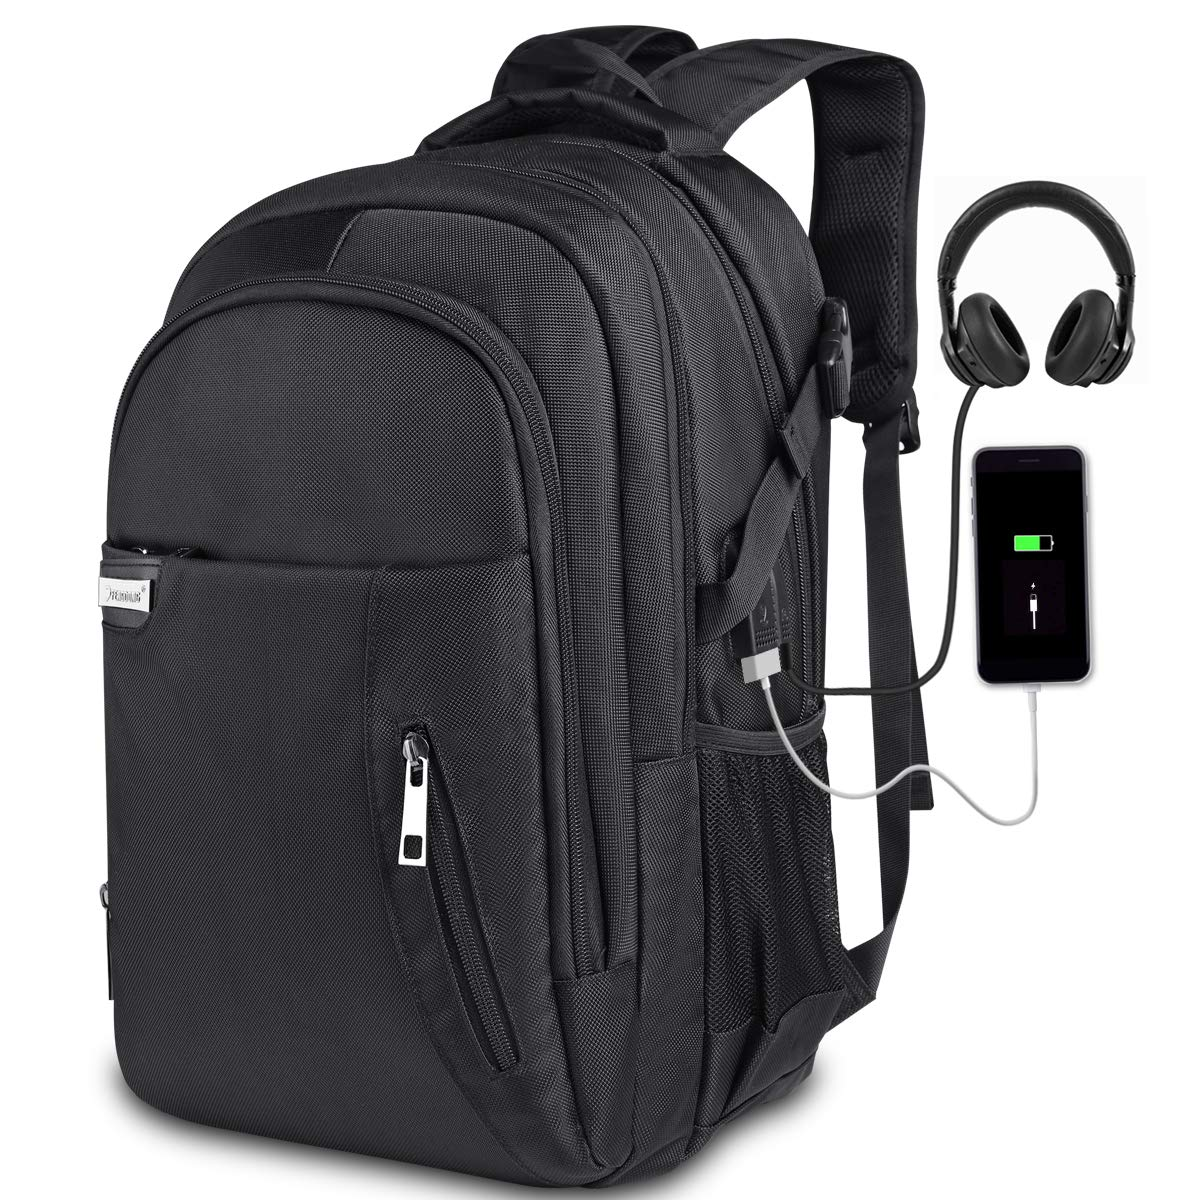 KUSOOFA Laptop Backpack with USB Charging Port Headphone Interface,Water Resistant College School Bag Business Travel Computer Backpack For Men & Women Fits 17.3 Inch Laptop and Notebook